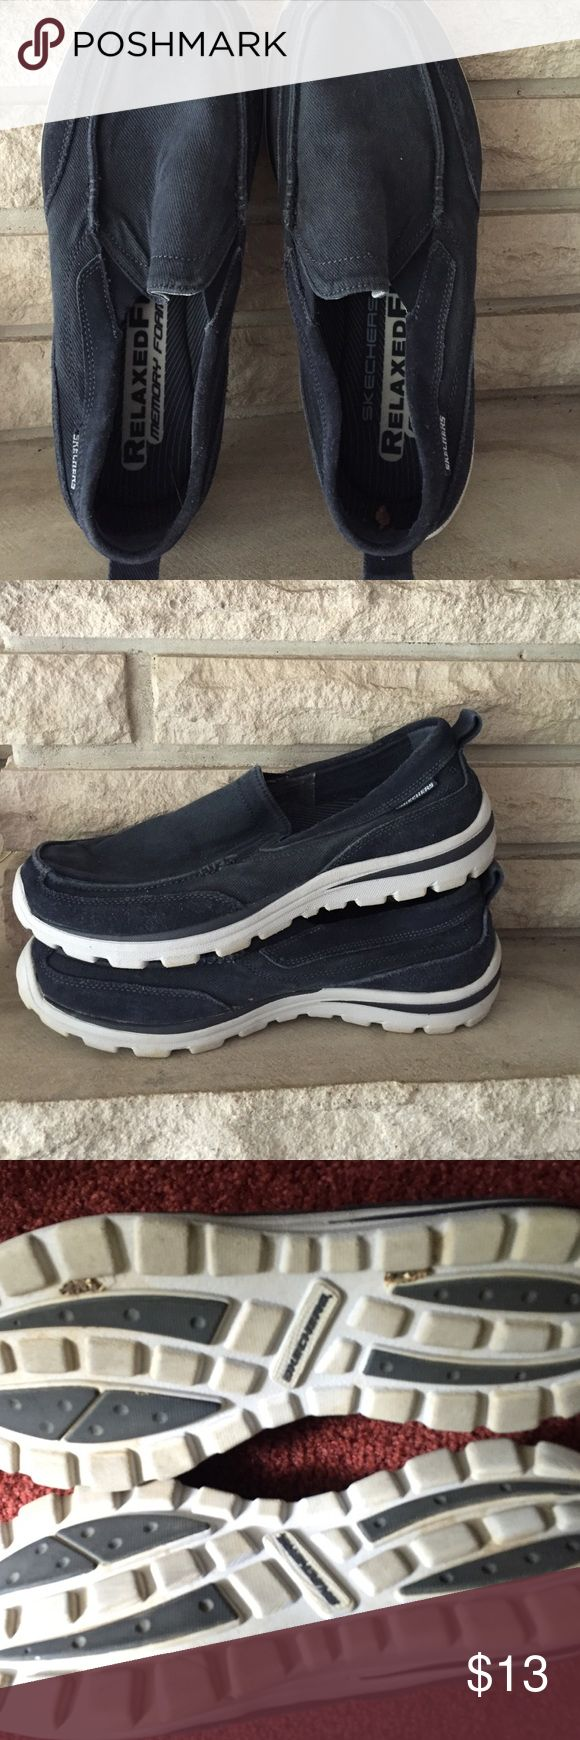 Sketchers Mens boat shoes Blue and White. Worn a few times. Great shape. Relaxed memory foam. Sketchers Shoes Boat Shoes